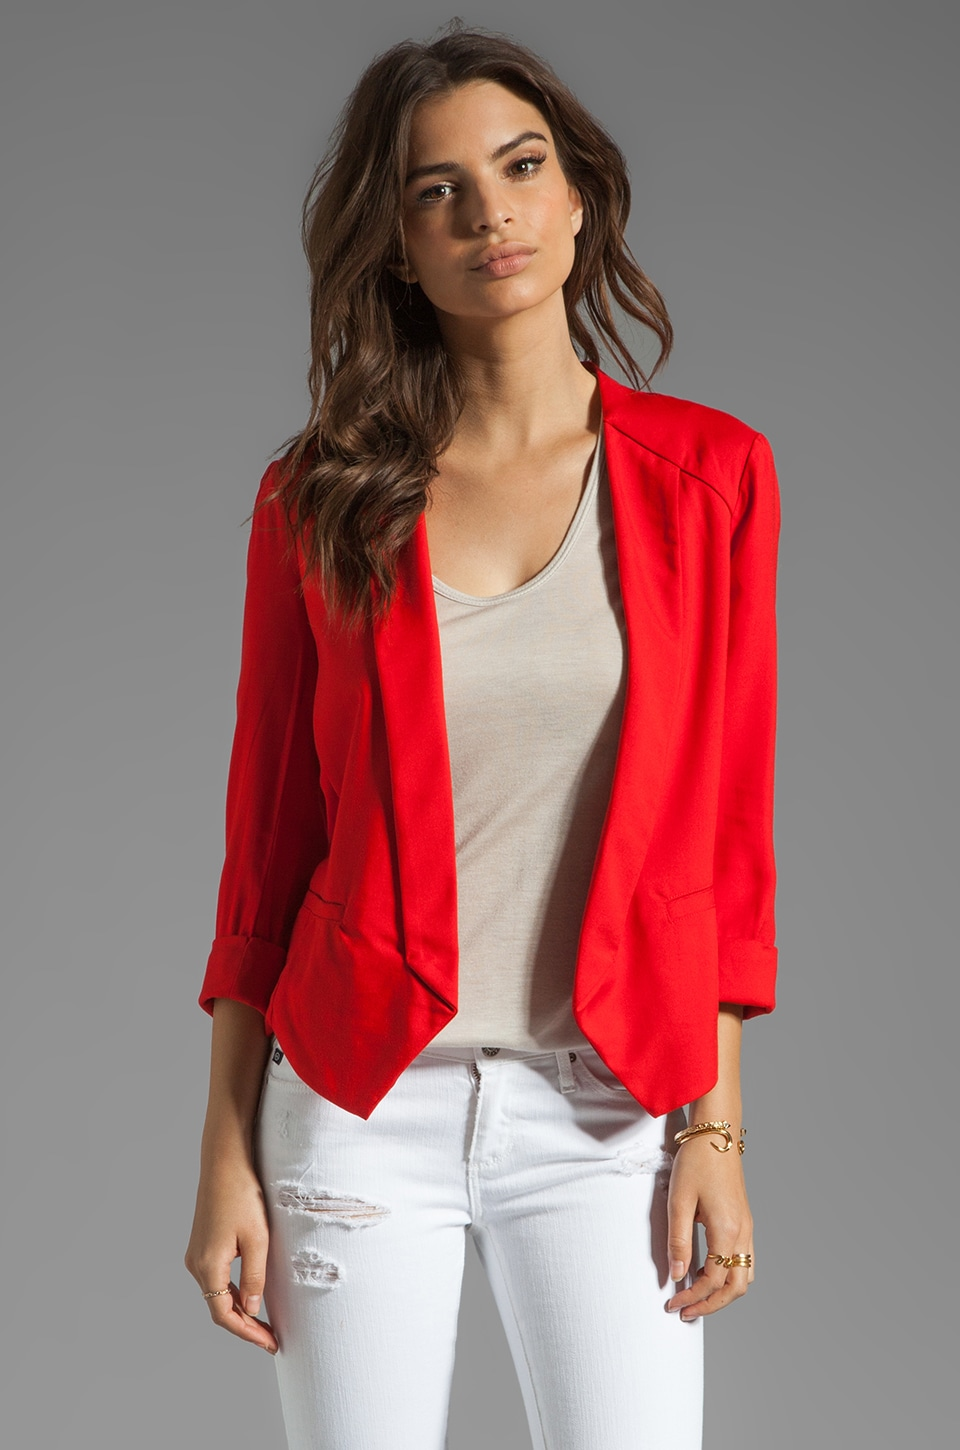 Ella Moss Aiselin Blazer in Poppy